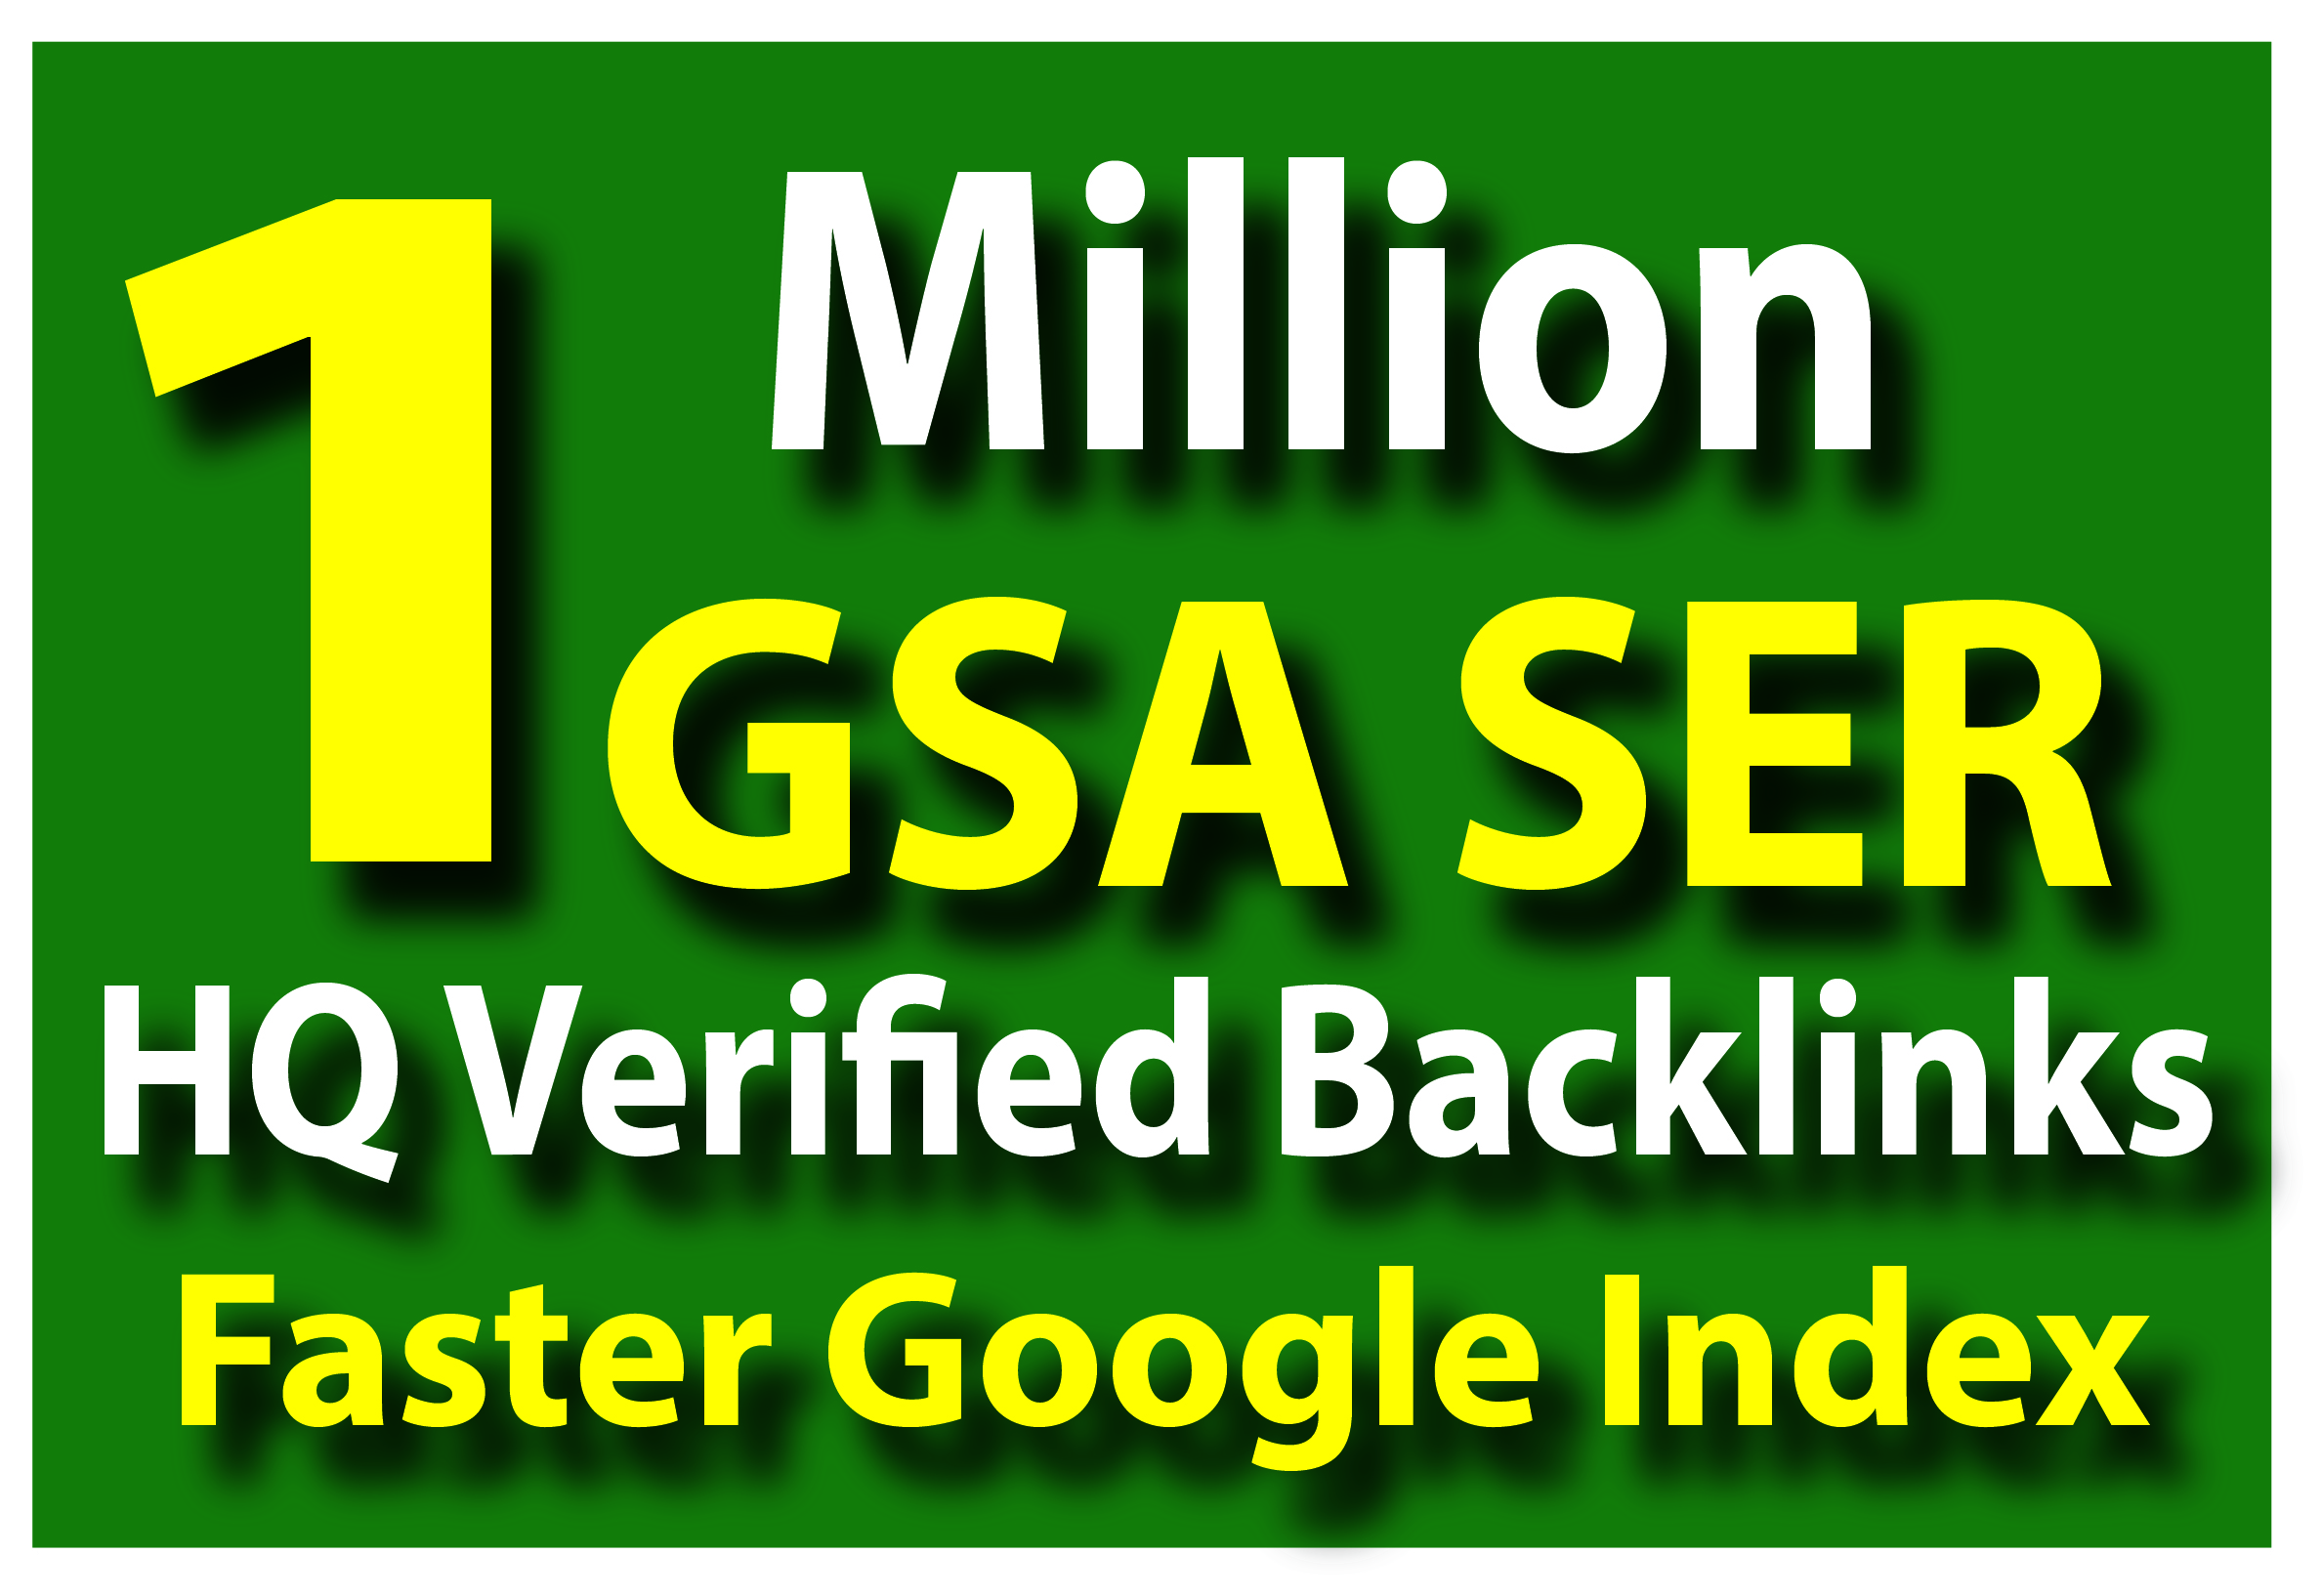 1 Million GSA SER Verified Backlinks For Faster Google Index and Ranking